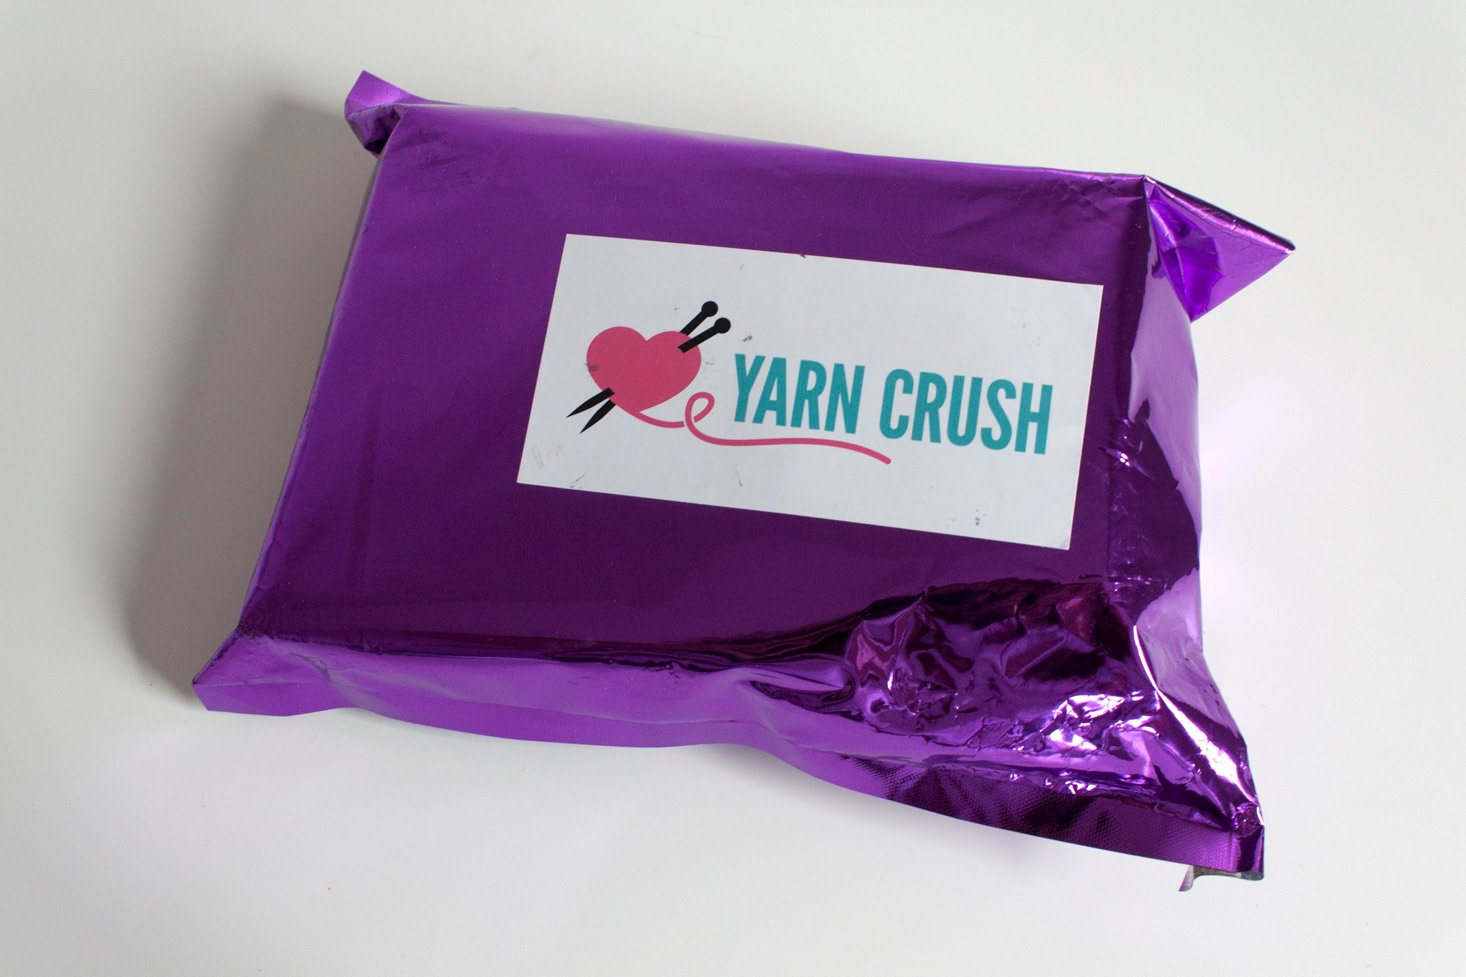 Yarn Crush Sock Subscription Review Coupon September